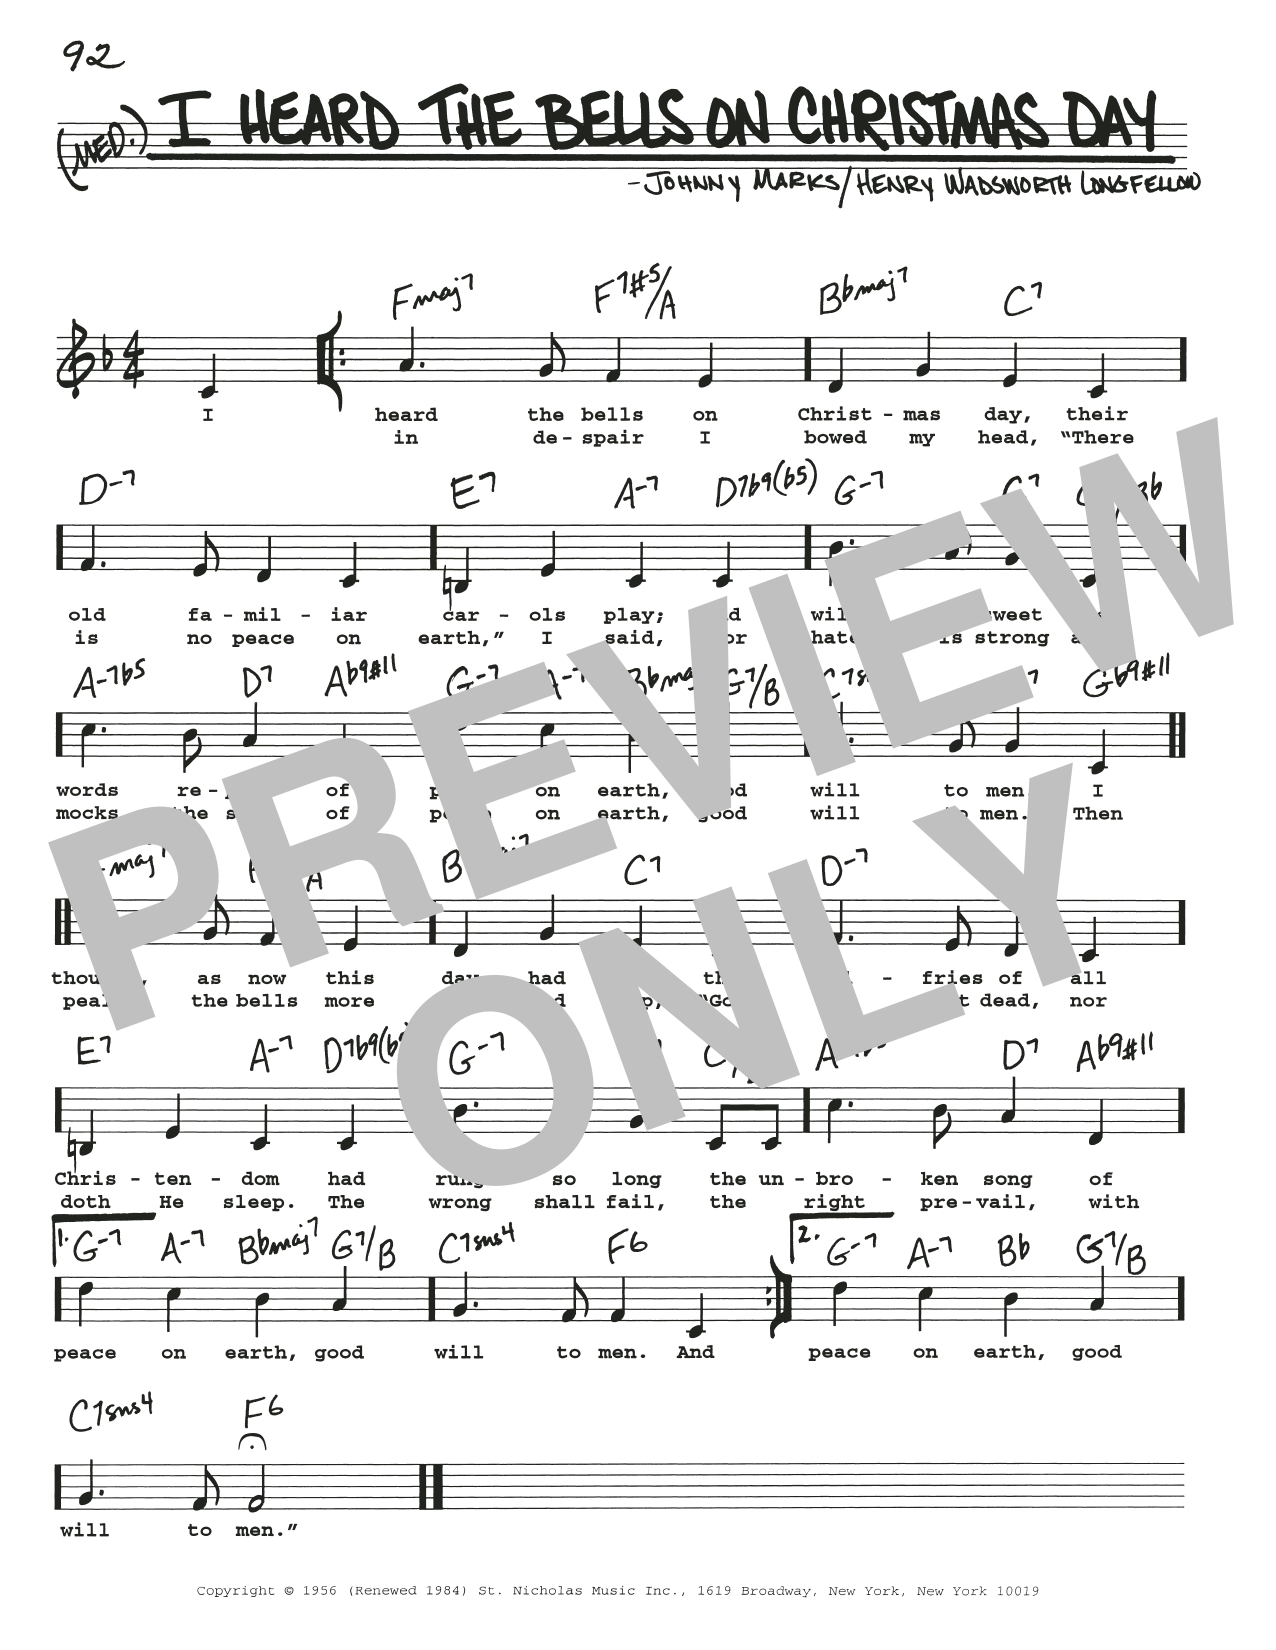 I Heard The Bells On Christmas Day Lyrics.I Heard The Bells On Christmas Day By Johnny Marks Real Book Melody Lyrics Chords Digital Sheet Music